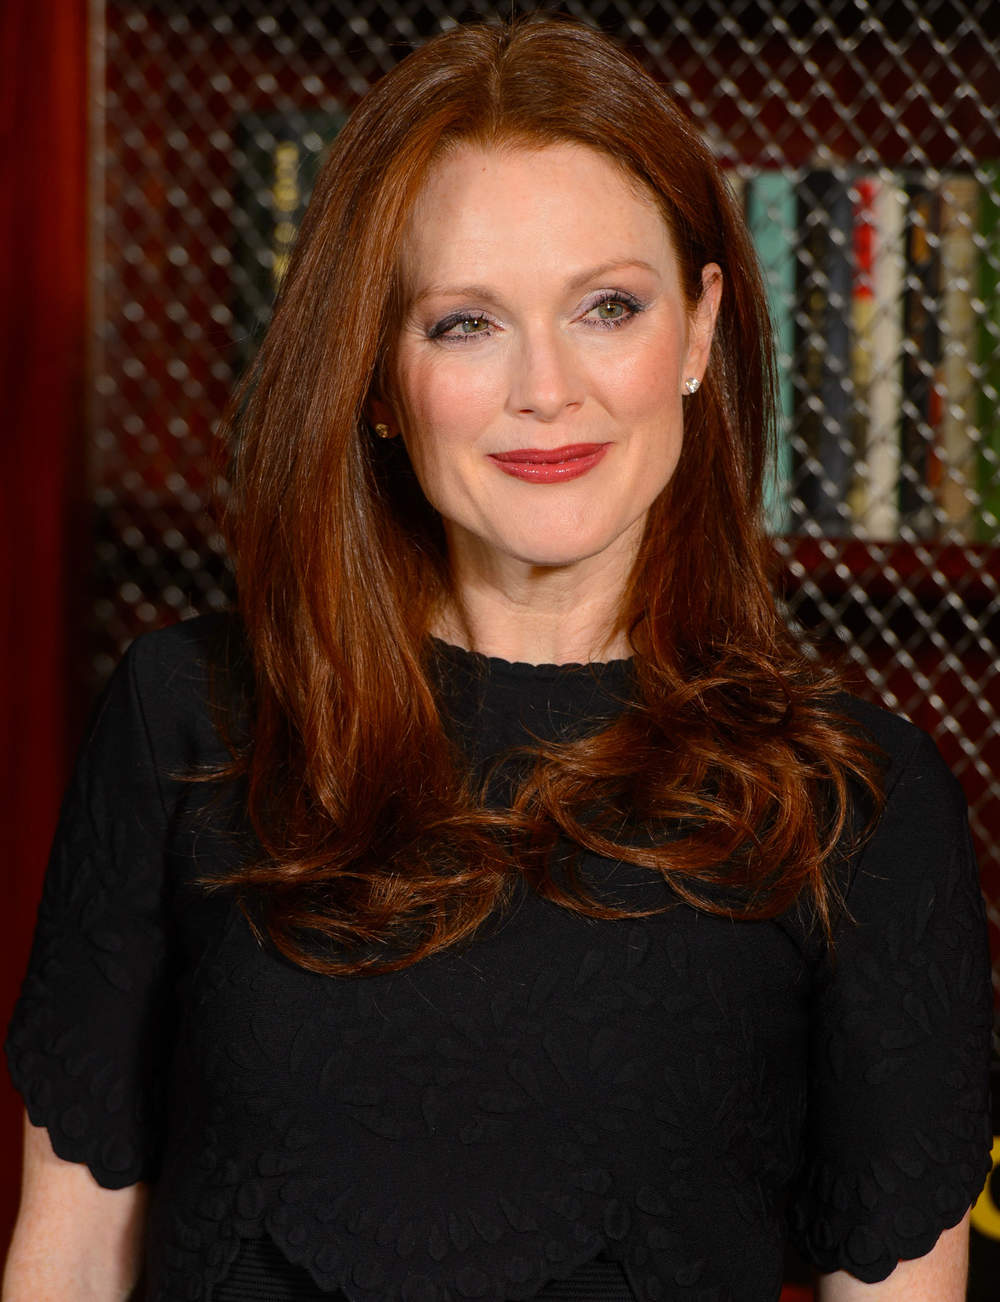 Les cheveux ultra-longs de Julianne Moore